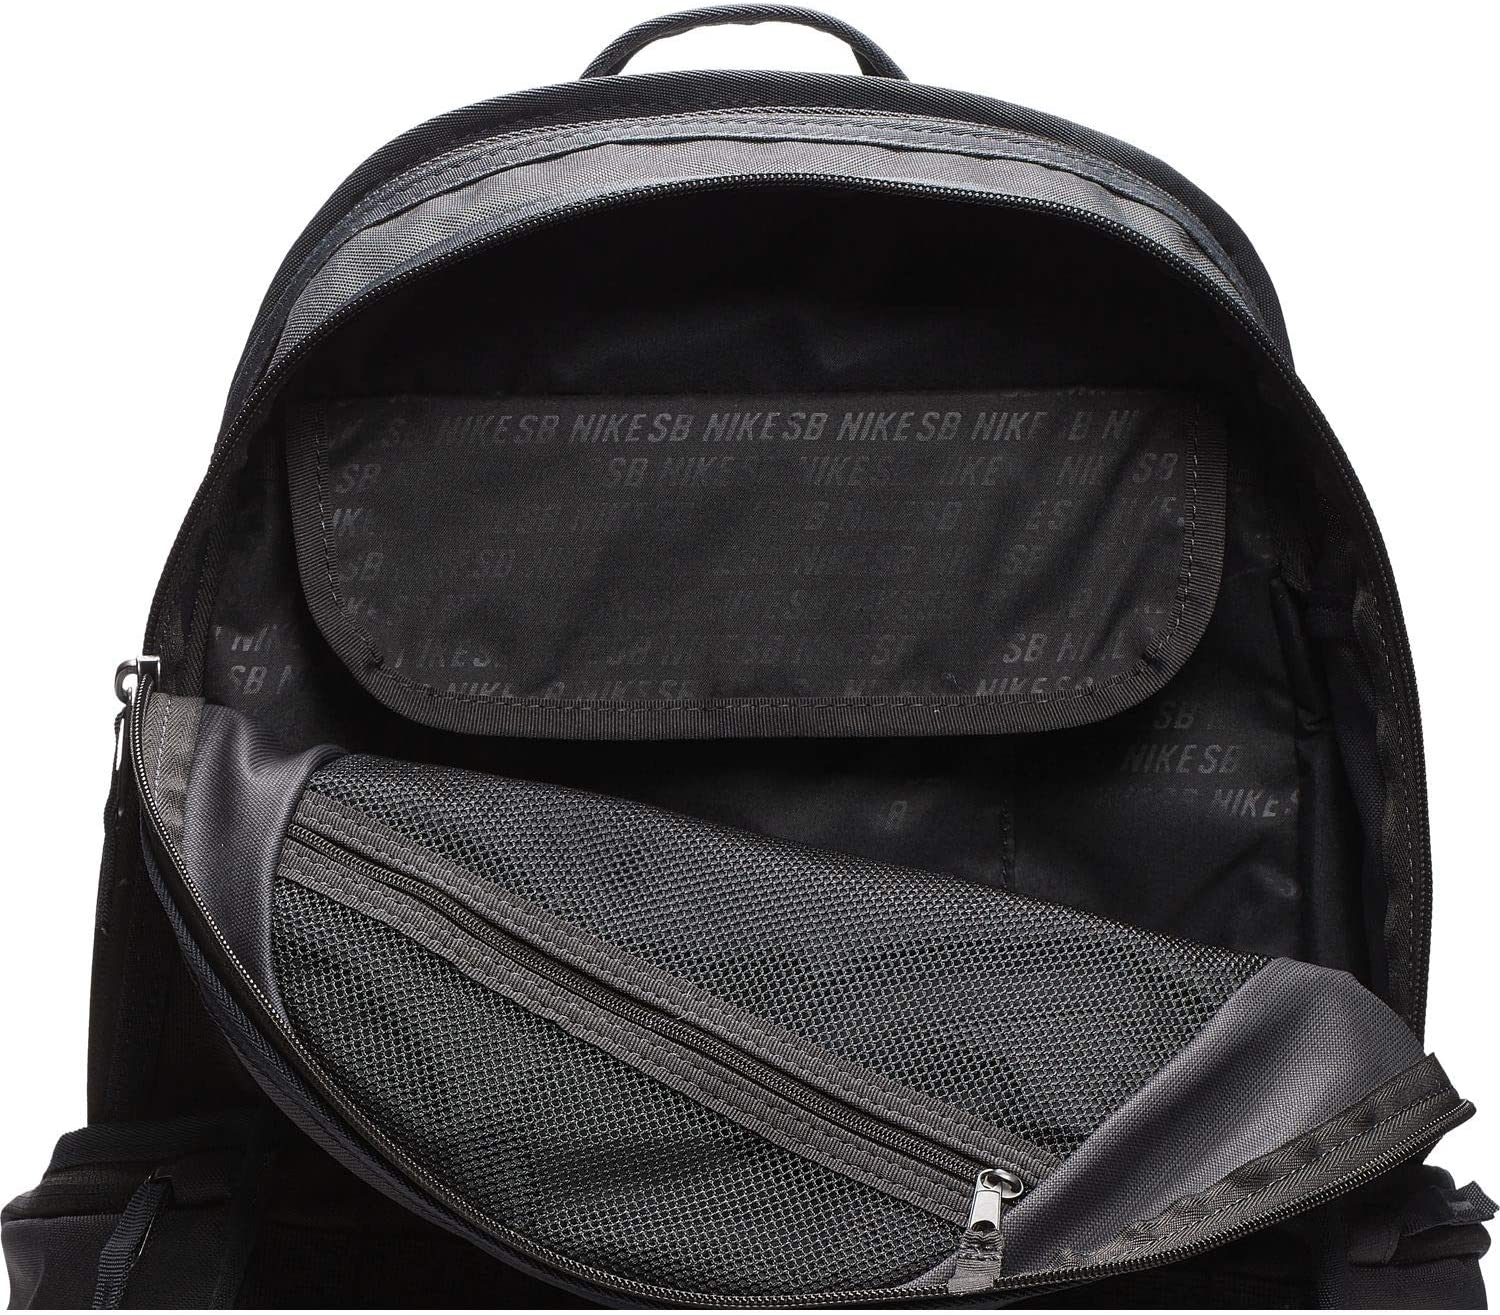 Nike SB RPM Backpack Anthracite